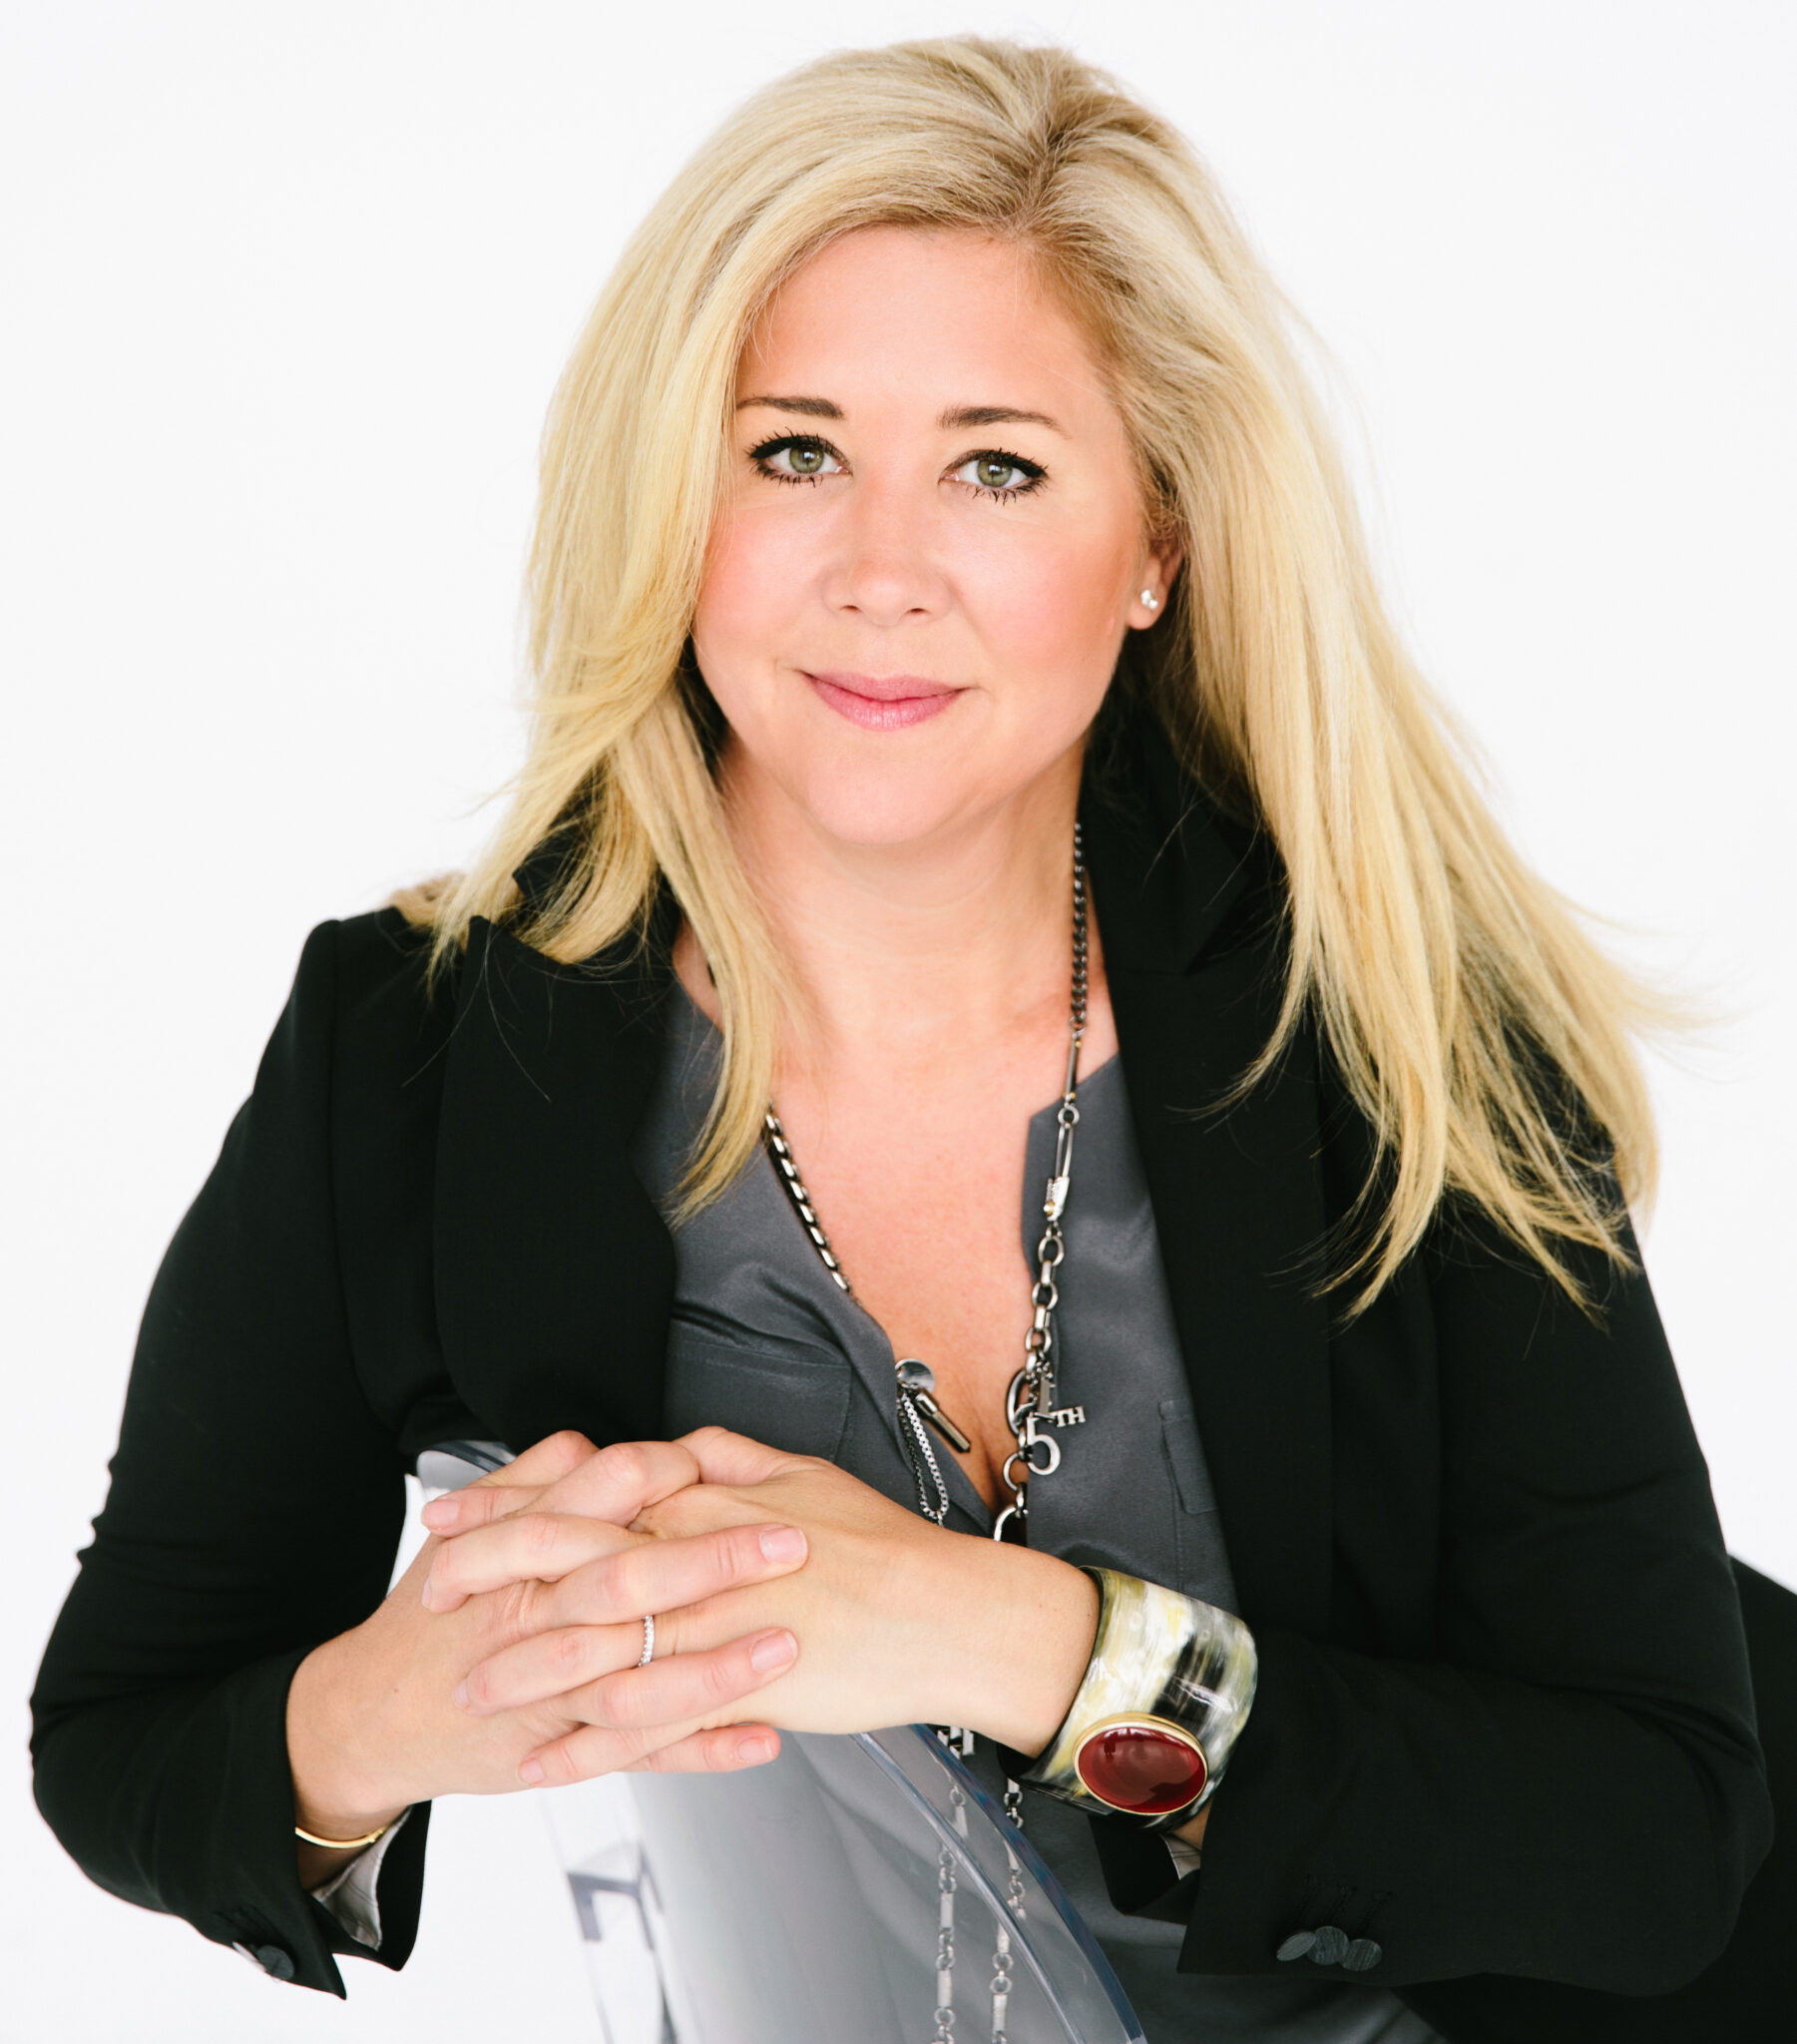 Top 100 Female Founder and CEO of Joylux...